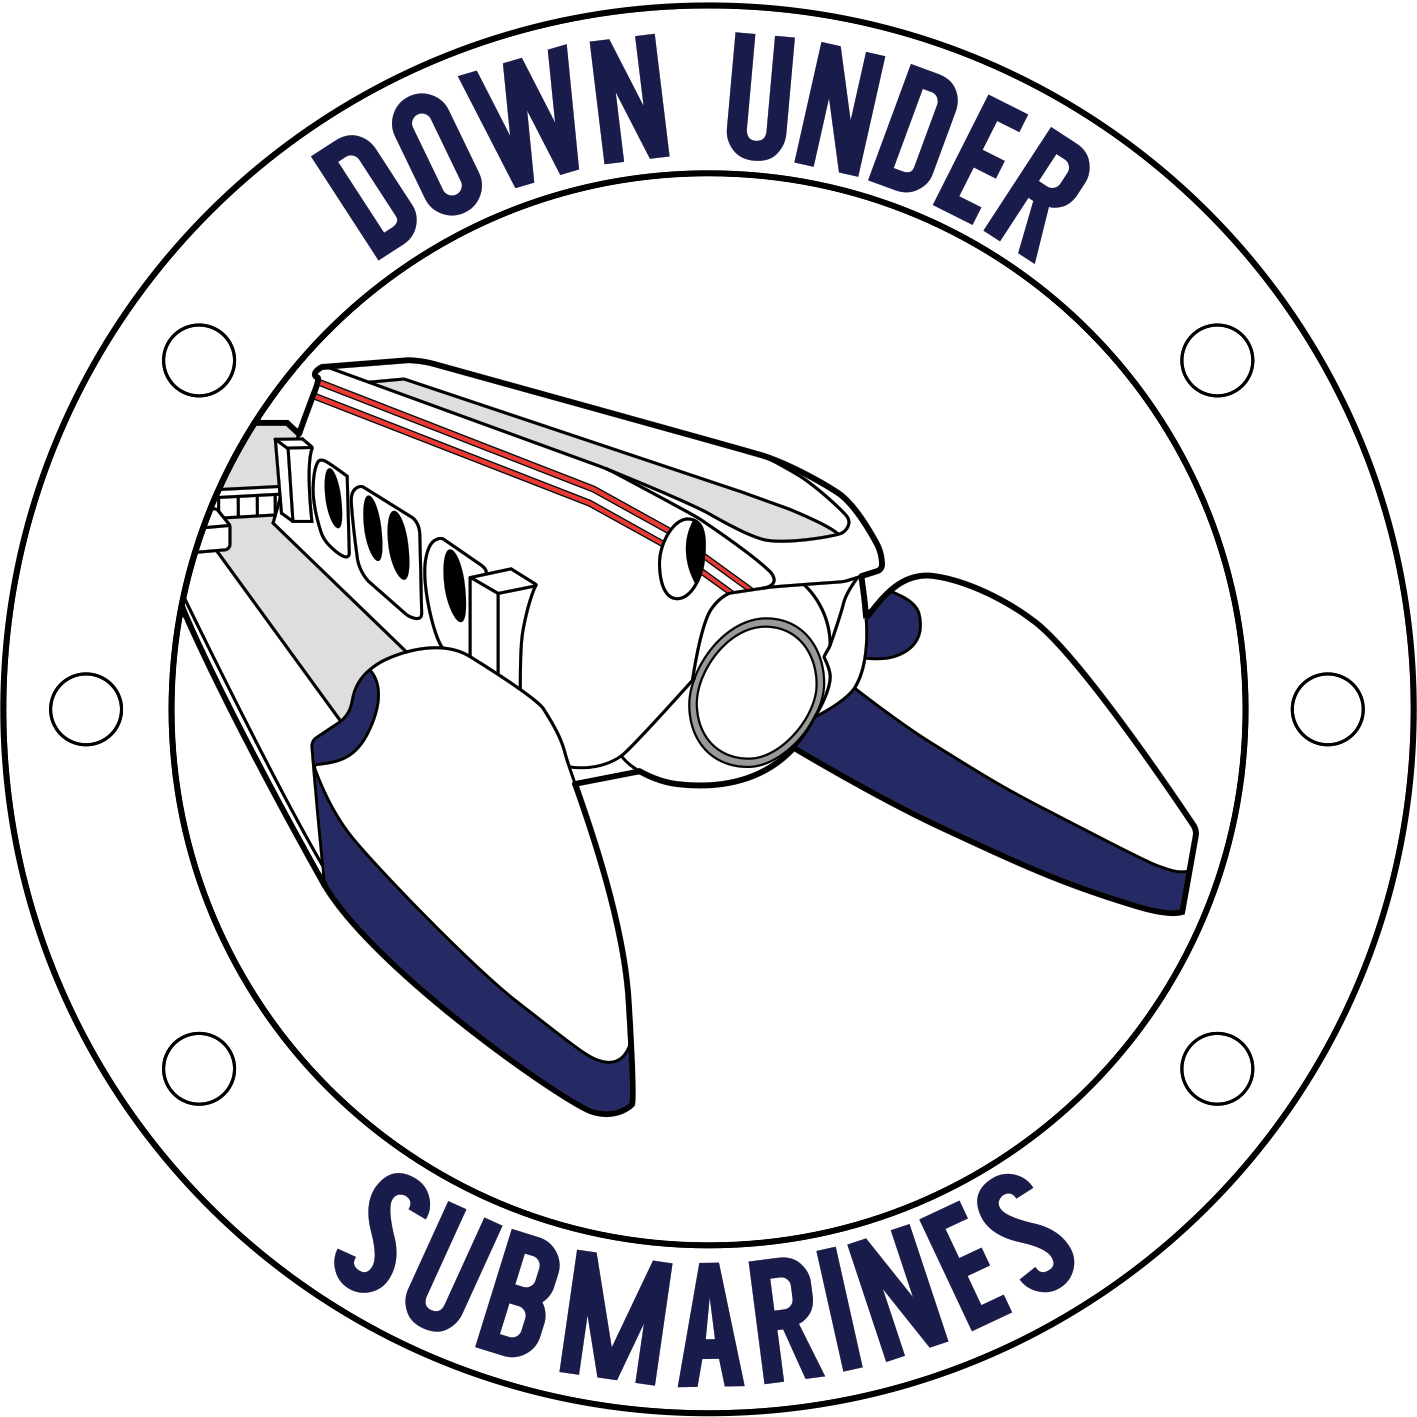 Down Under Submarines